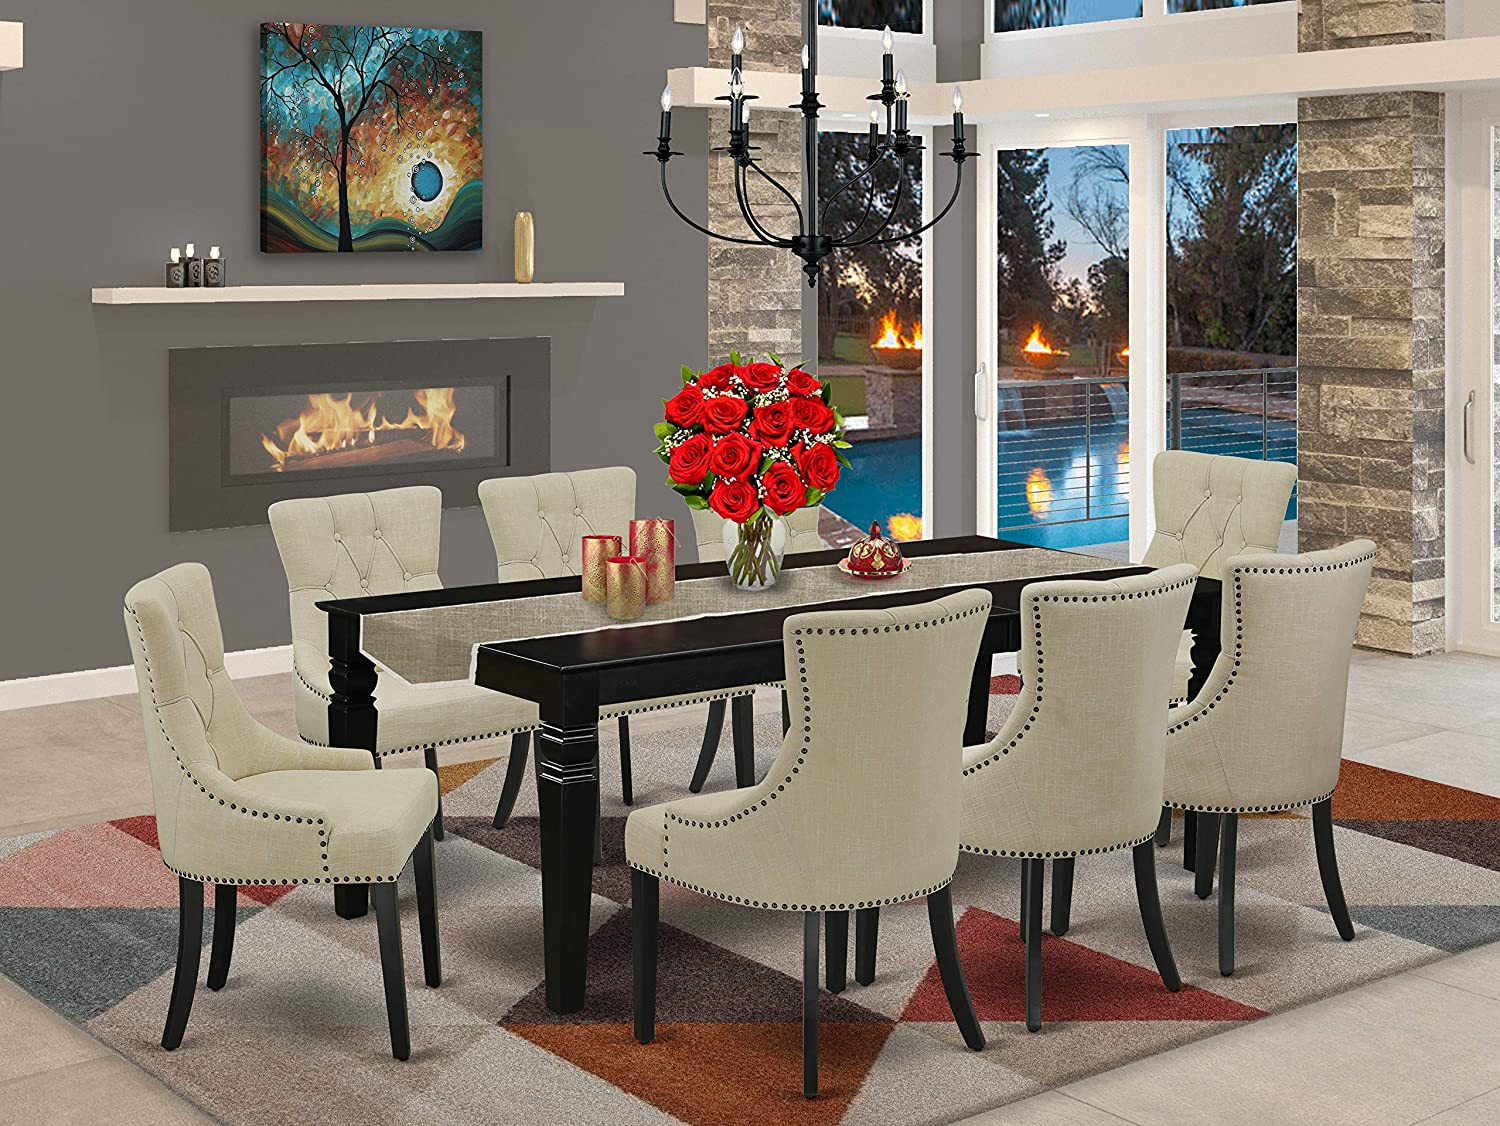 LGFR9-BLK-02 9Pc Dining Set Includes a Rectangle Dining Table with Butterfly Leaf and Eight Parson Chairs with Light Beige Fabric, Black Finish